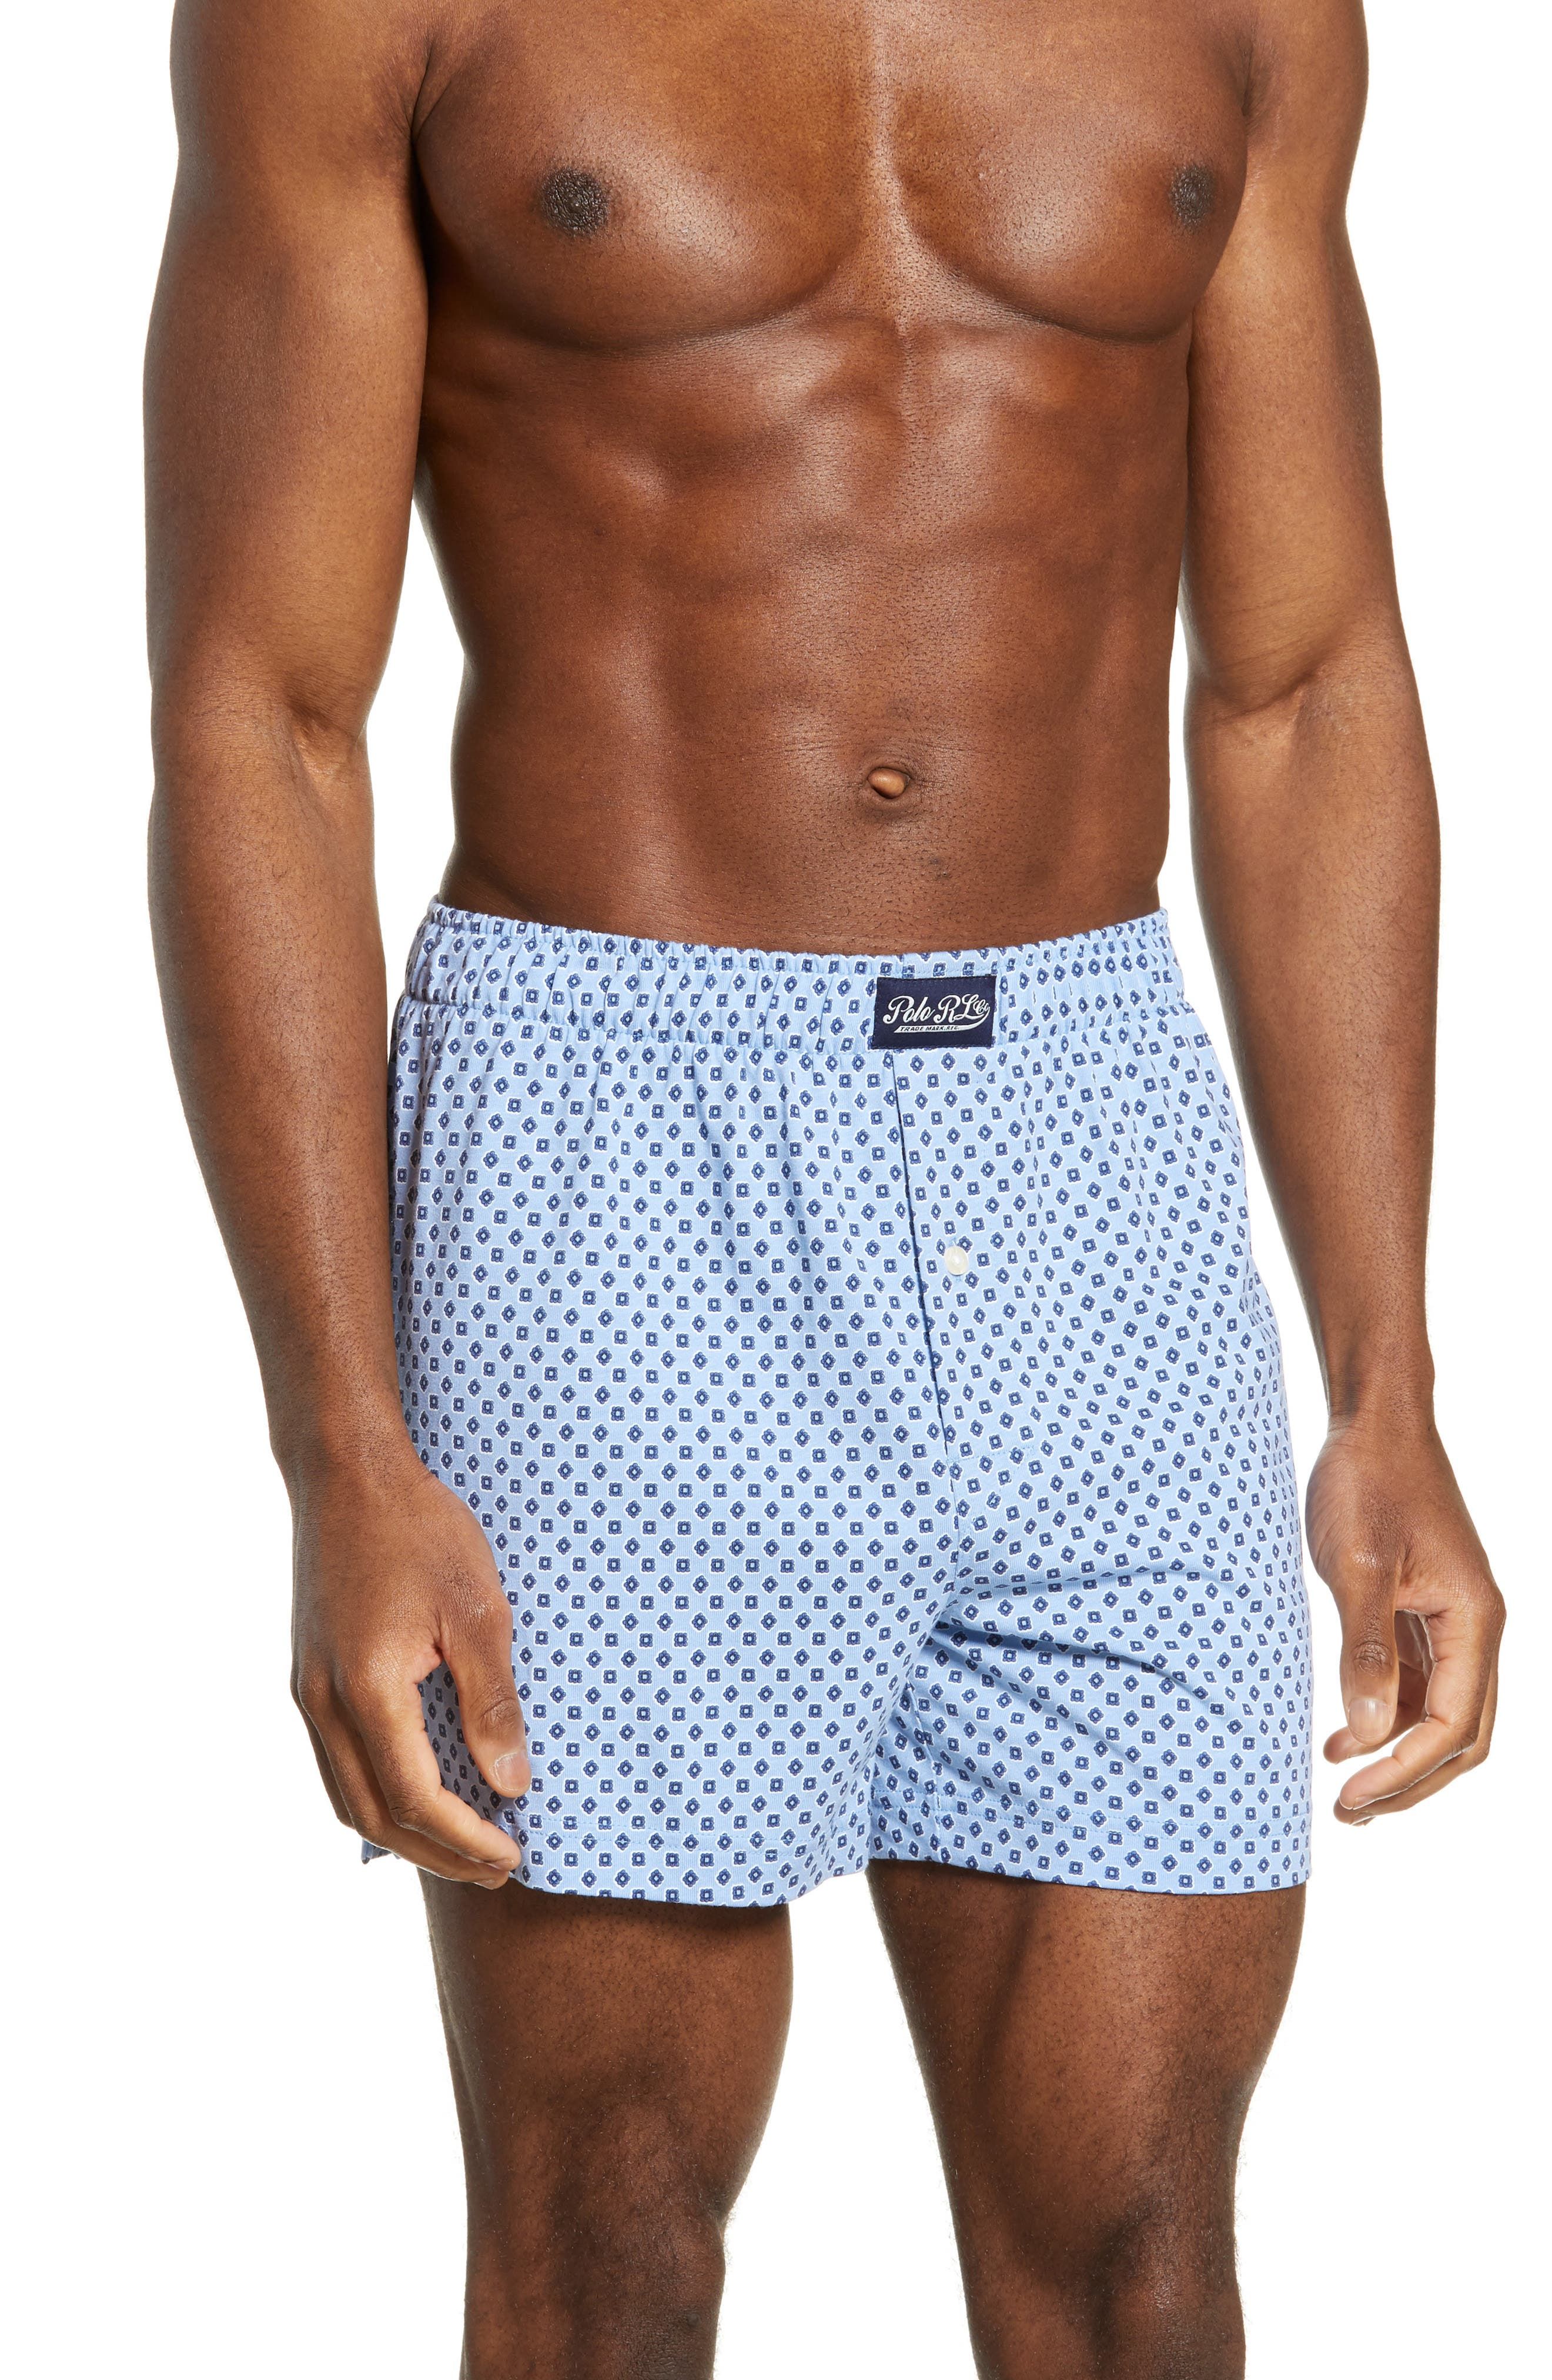 Image of Polo Ralph Lauren Printed Knit Boxers